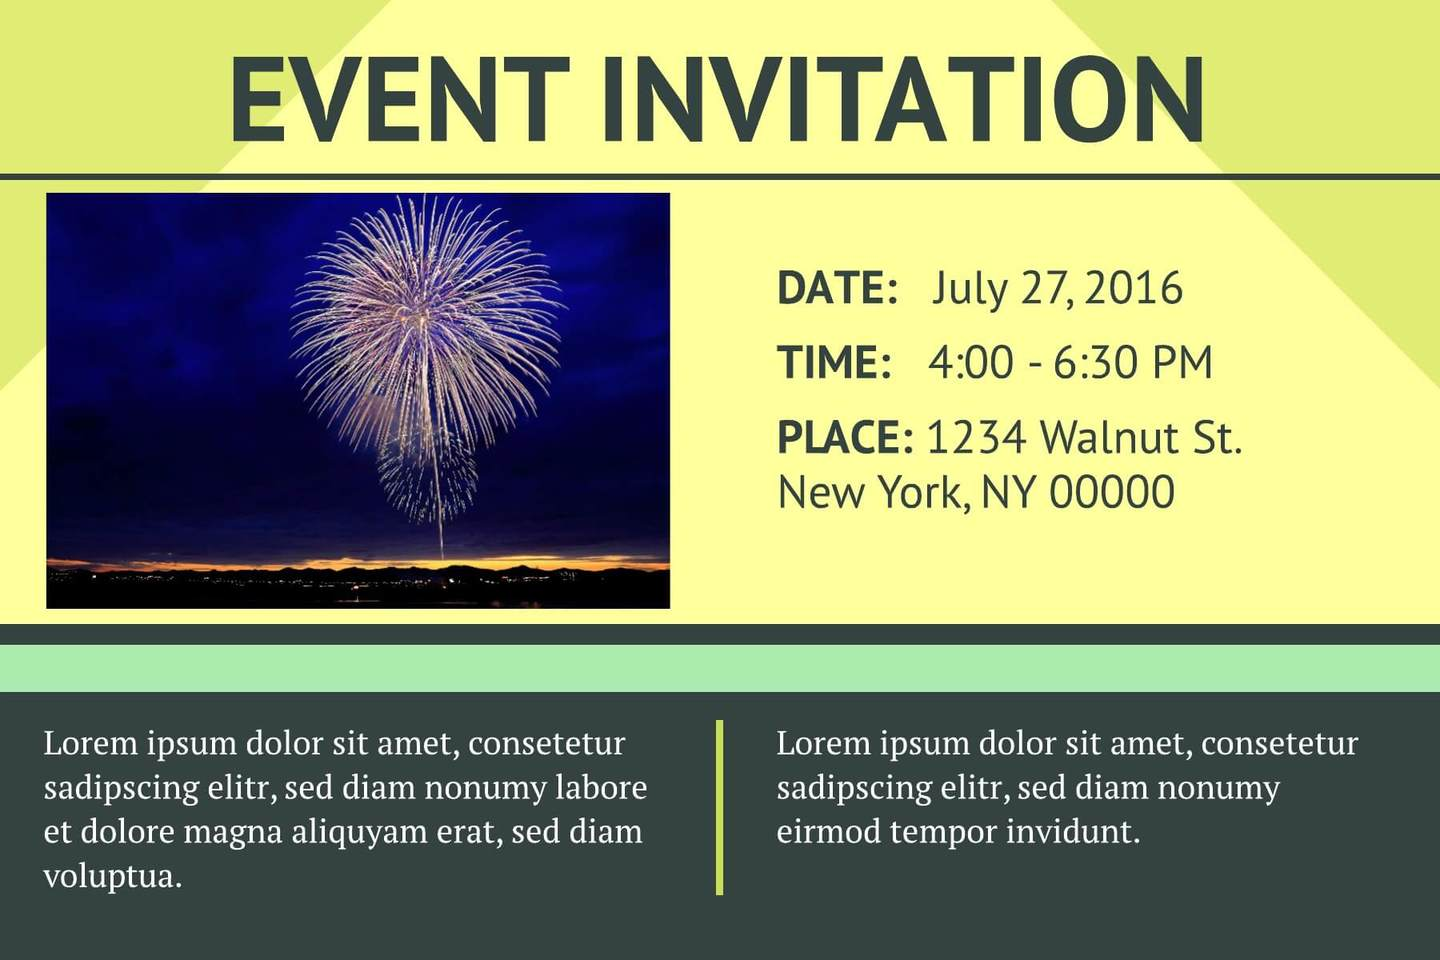 3 free event invitation templates & examples - lucidpress, Birthday invitations